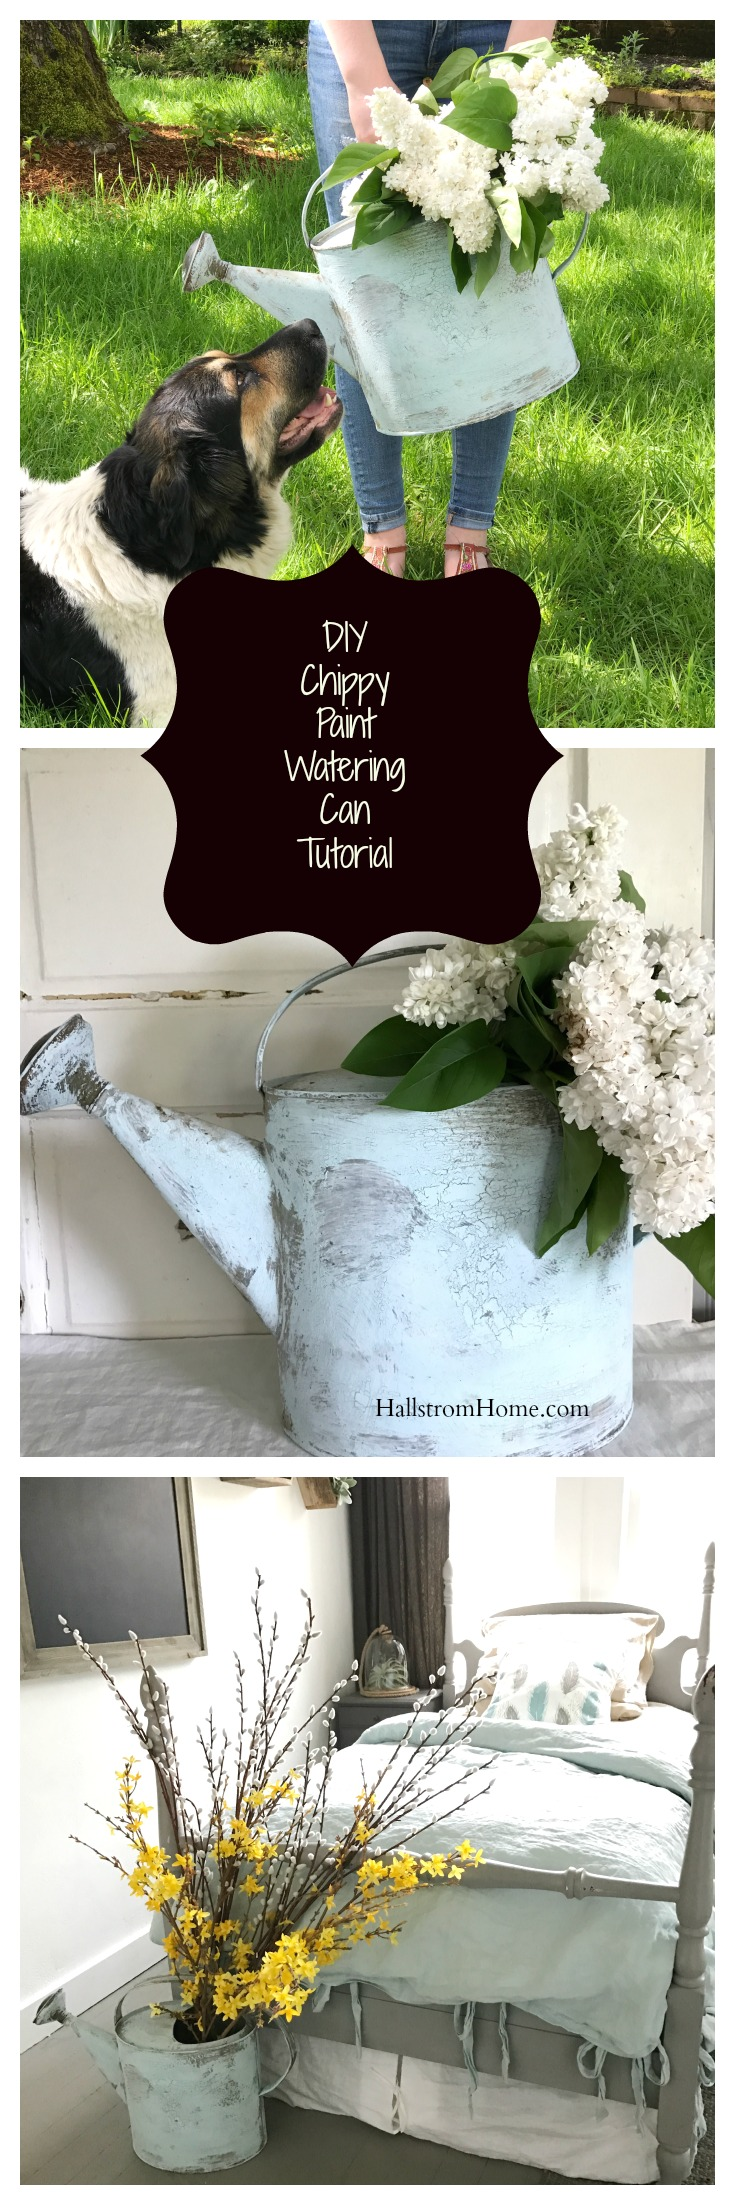 DIY chippy paint watering can tutorial from Hallstromhome. This is our SSMfeatureme for the week. Find this tutorial on how to create an old vinatge worn look to a watering can or other items. Great way to create a farmhouse feel (aka Fixer Upper style - Magnolia Market). You can see how to DIY this at home from a thrift store find or something you have lying around the house.